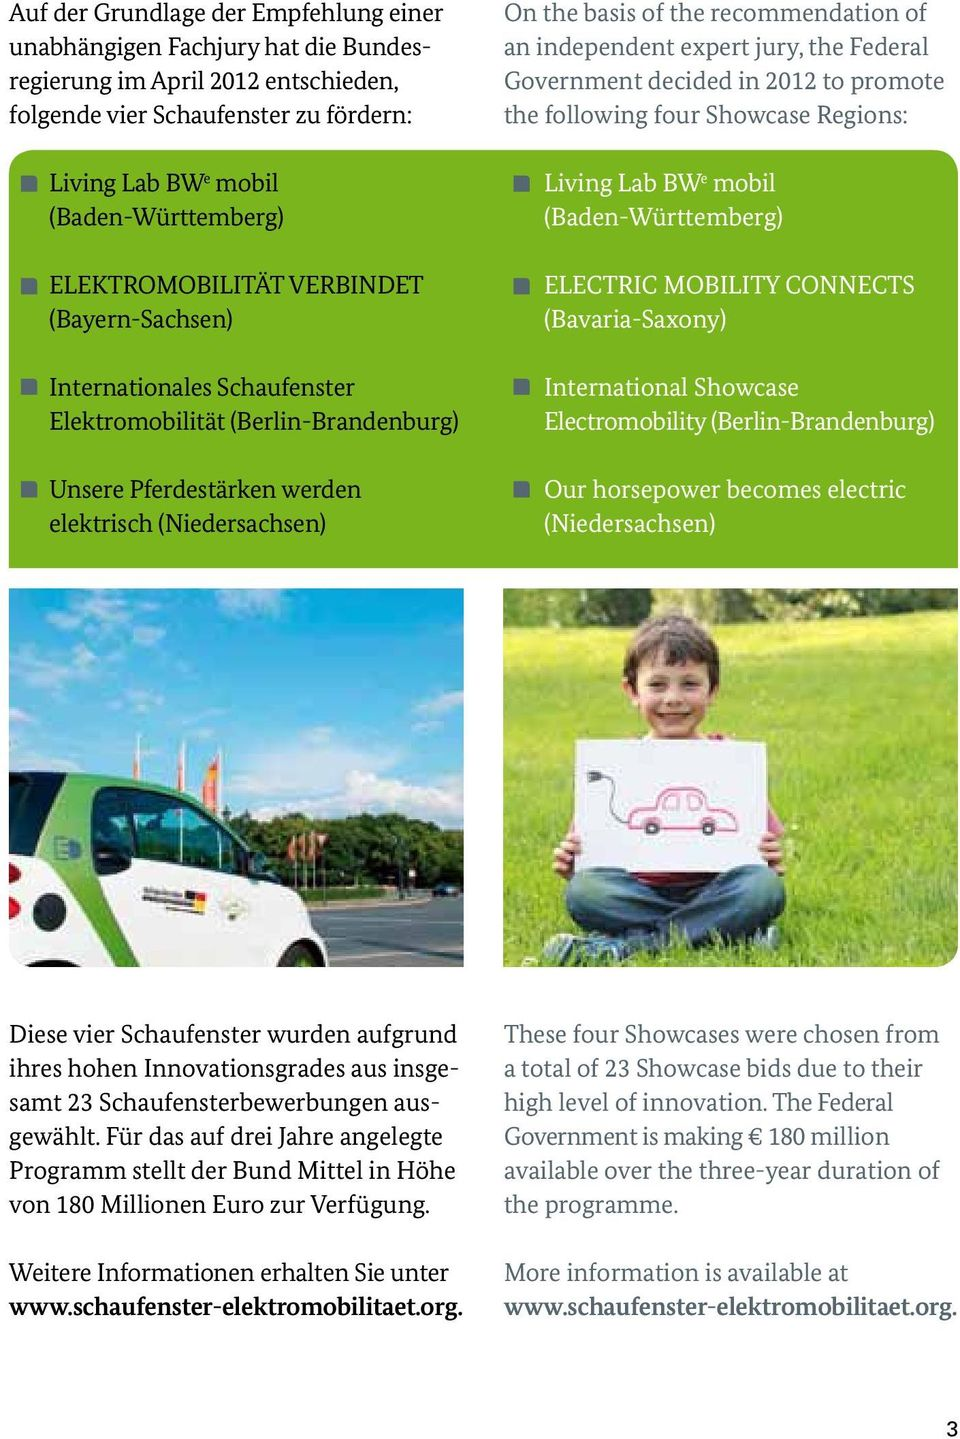 recommendation of an independent expert jury, the Federal Government decided in 2012 to promote the following four Showcase Regions: Living Lab BW e mobil (Baden-Württemberg) ELECTRIC MOBILITY